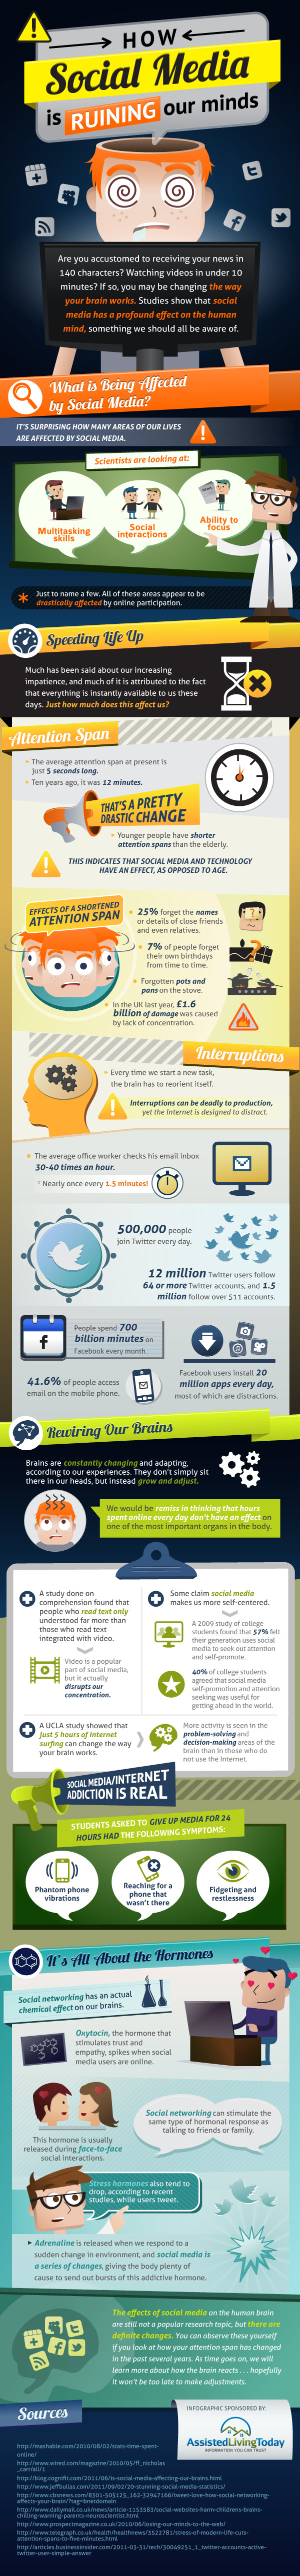 How Social Media Impacts Our Attention